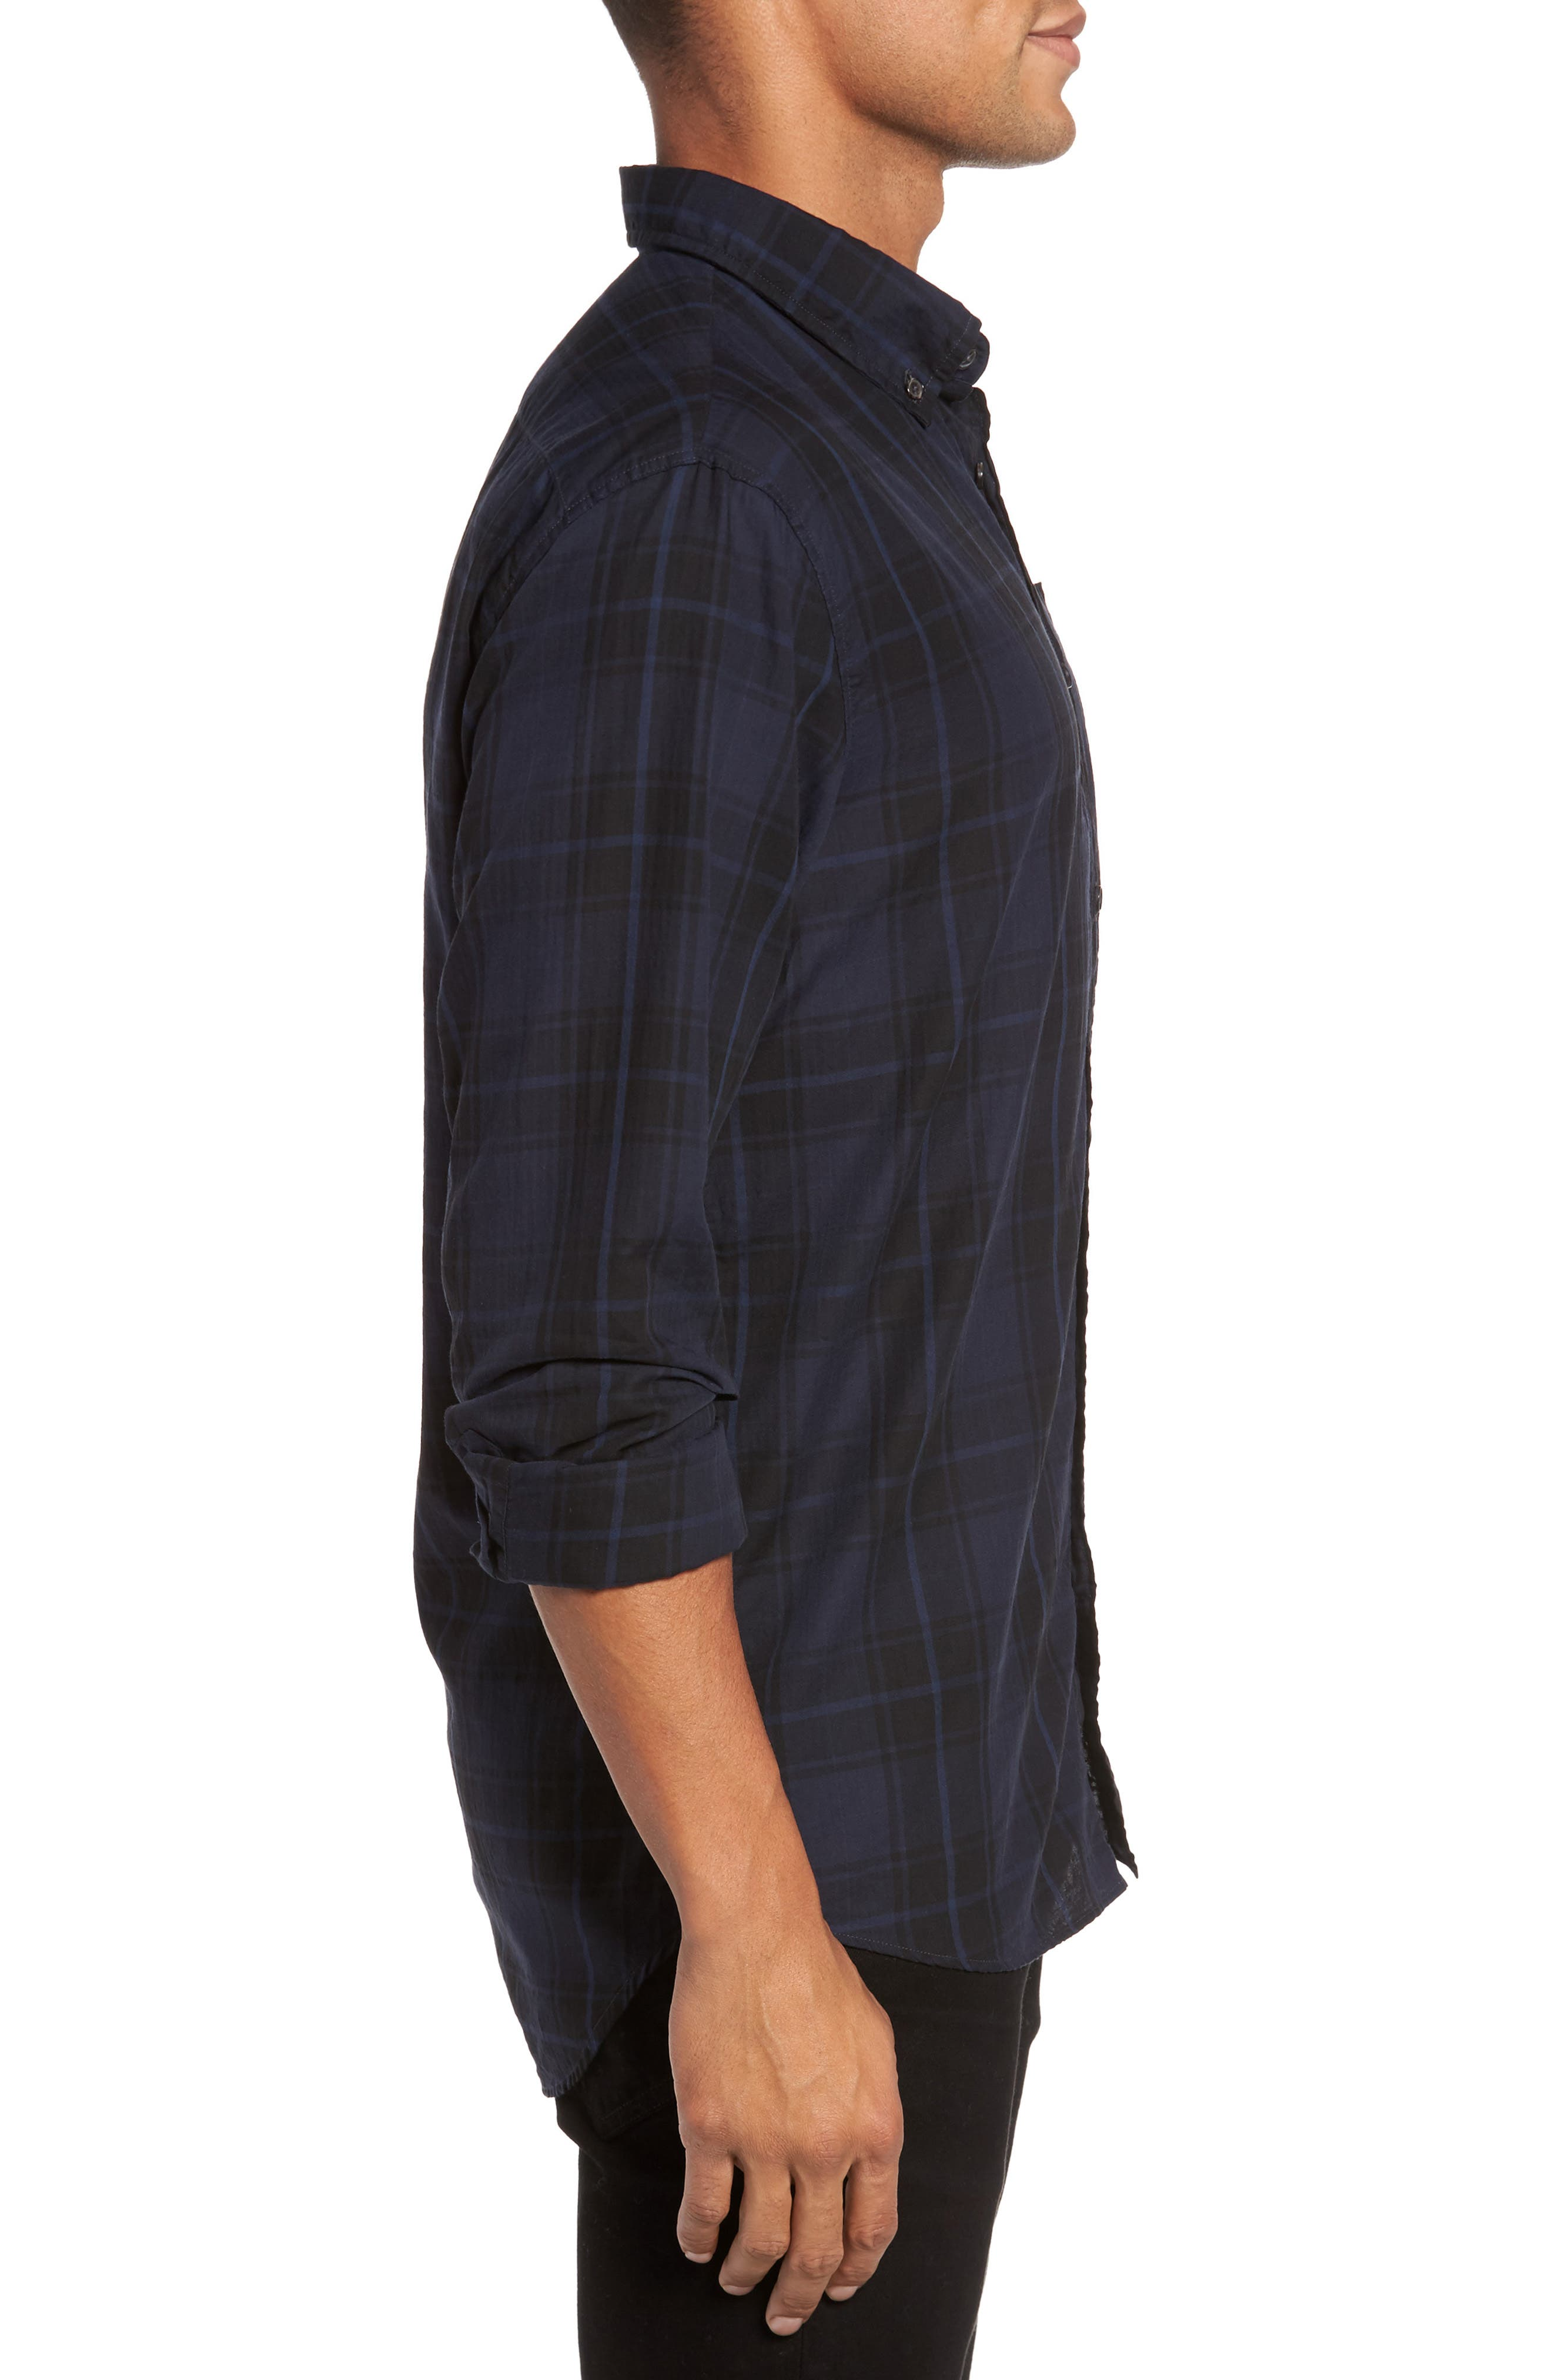 Wallace Slim Fit Sport Shirt,                             Alternate thumbnail 3, color,                             Navy/ Black